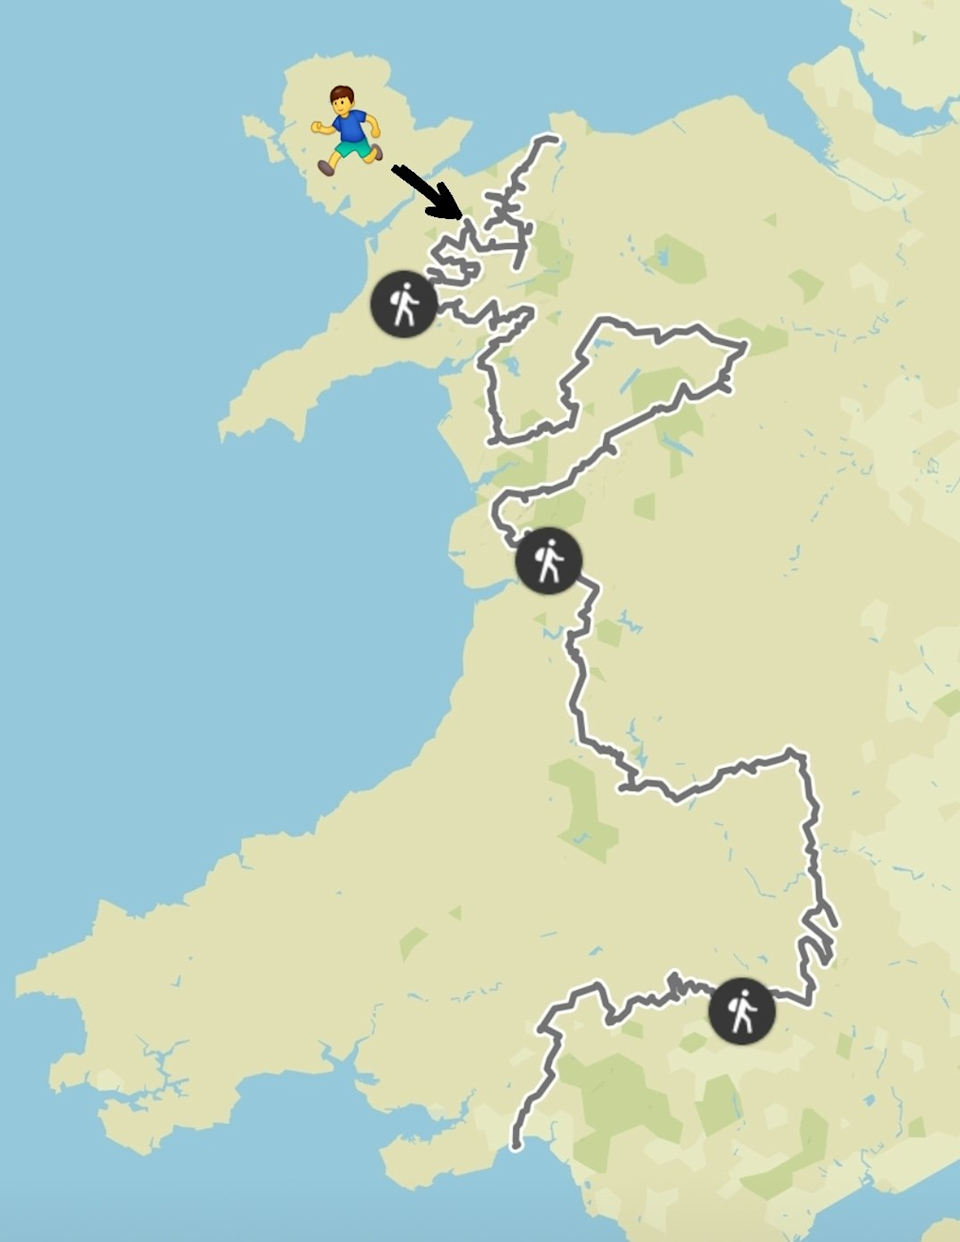 The route covers every peak in Wales over 2,000 feet in height, getting progressively harder (Will Renwick)